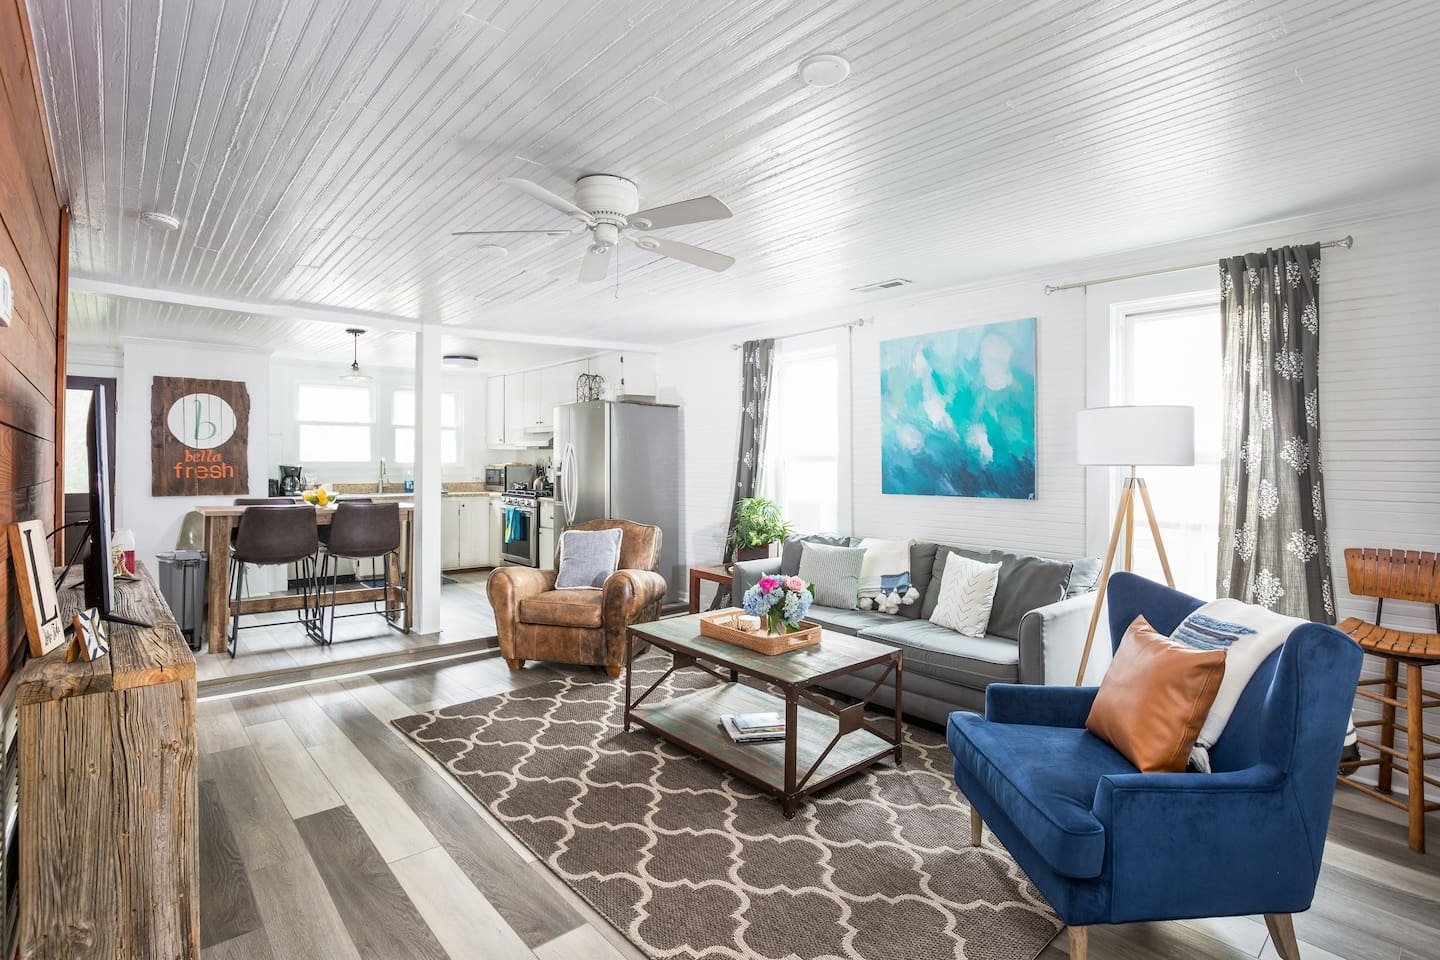 Bright, cute & comfortable beach cottage just steps away from the beach, pier and Center St. The location could not be any better!